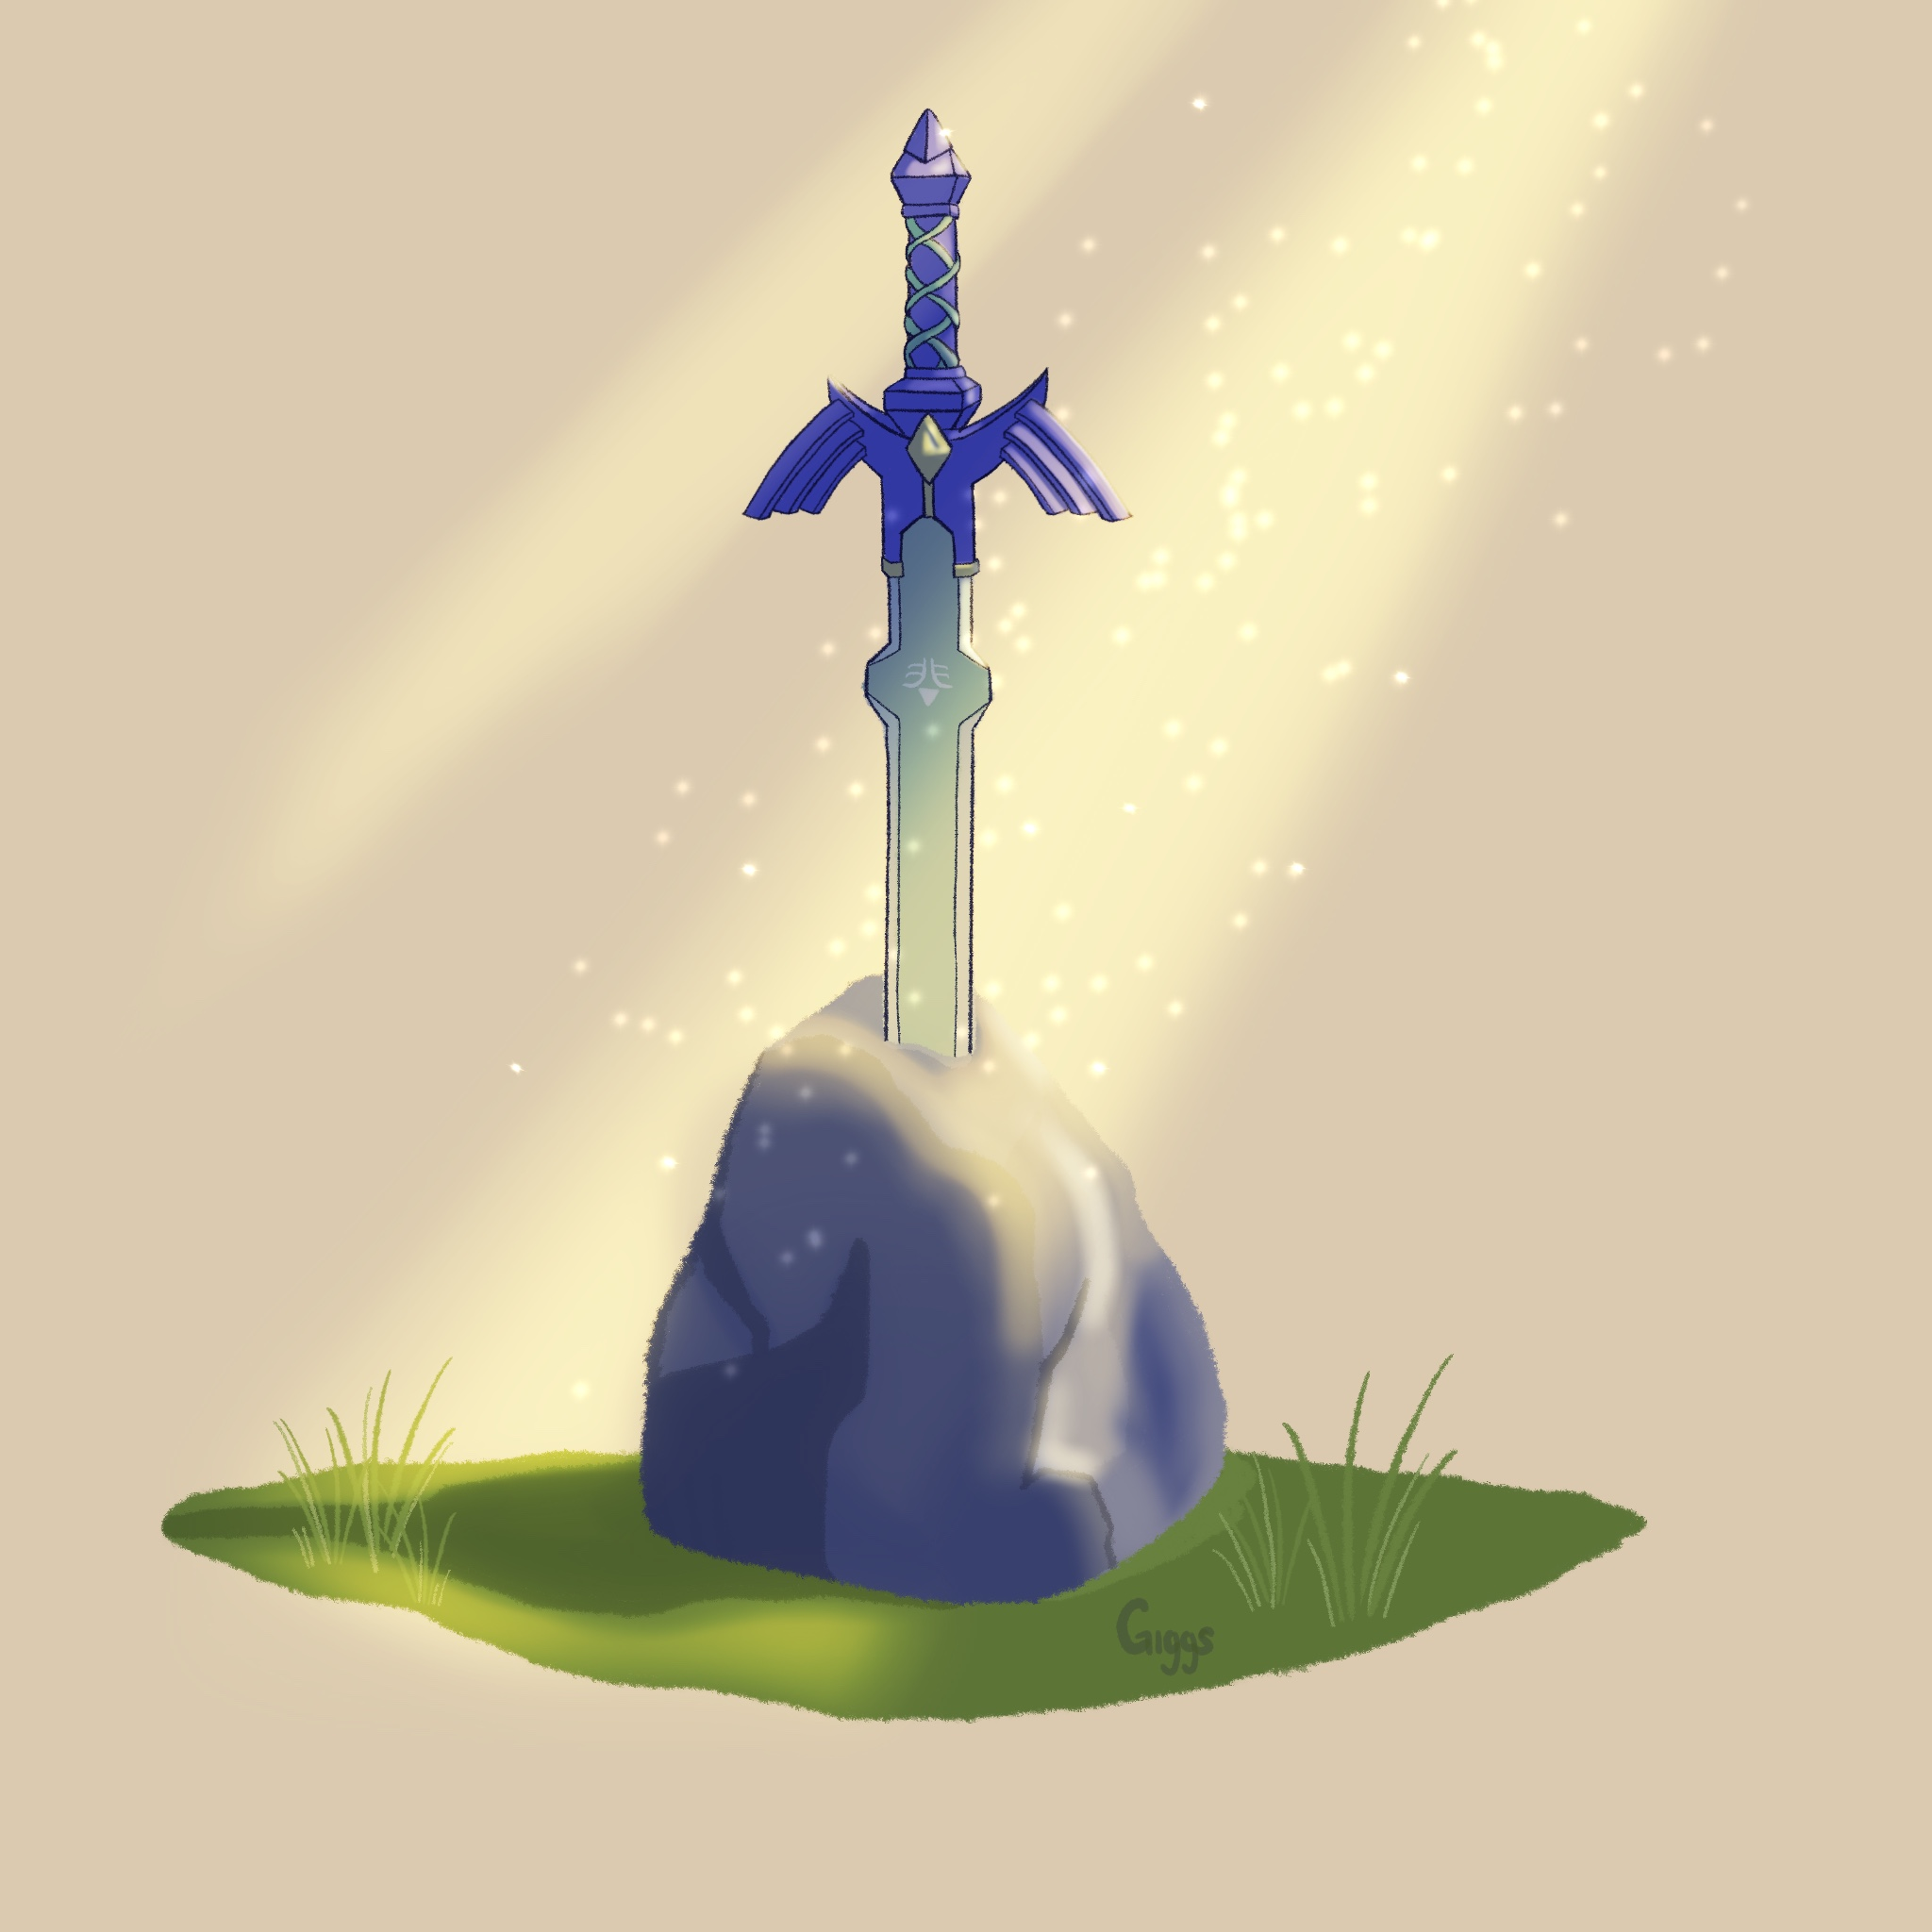 Day 13 of 100: Sword